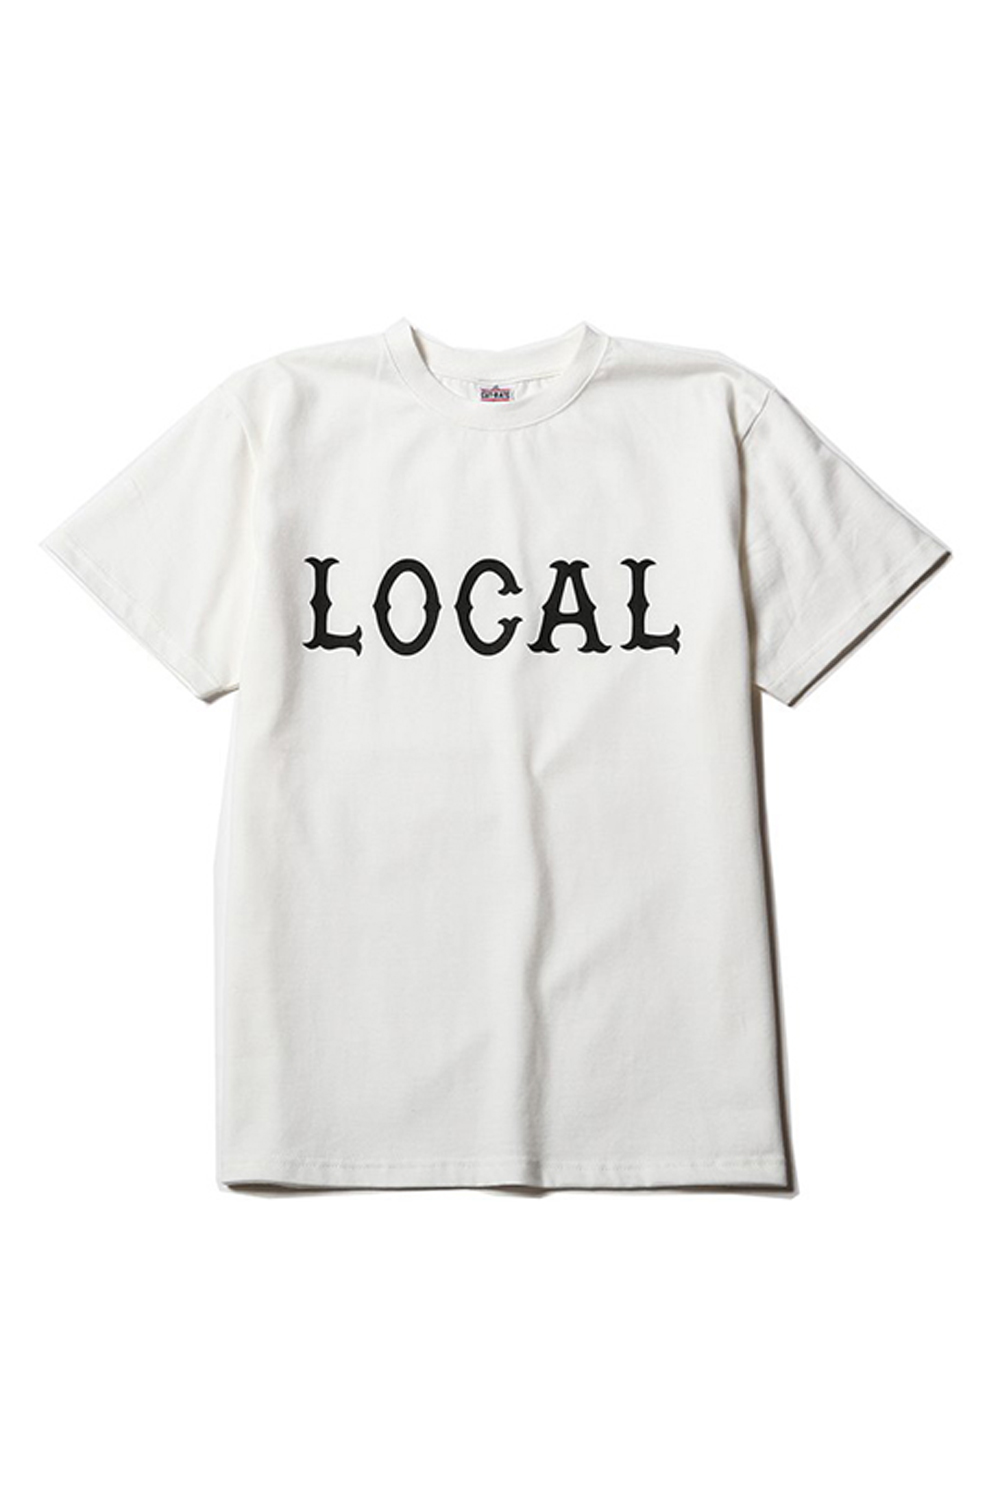 画像1: 【CUTRATE】LOCAL T-SHIRT